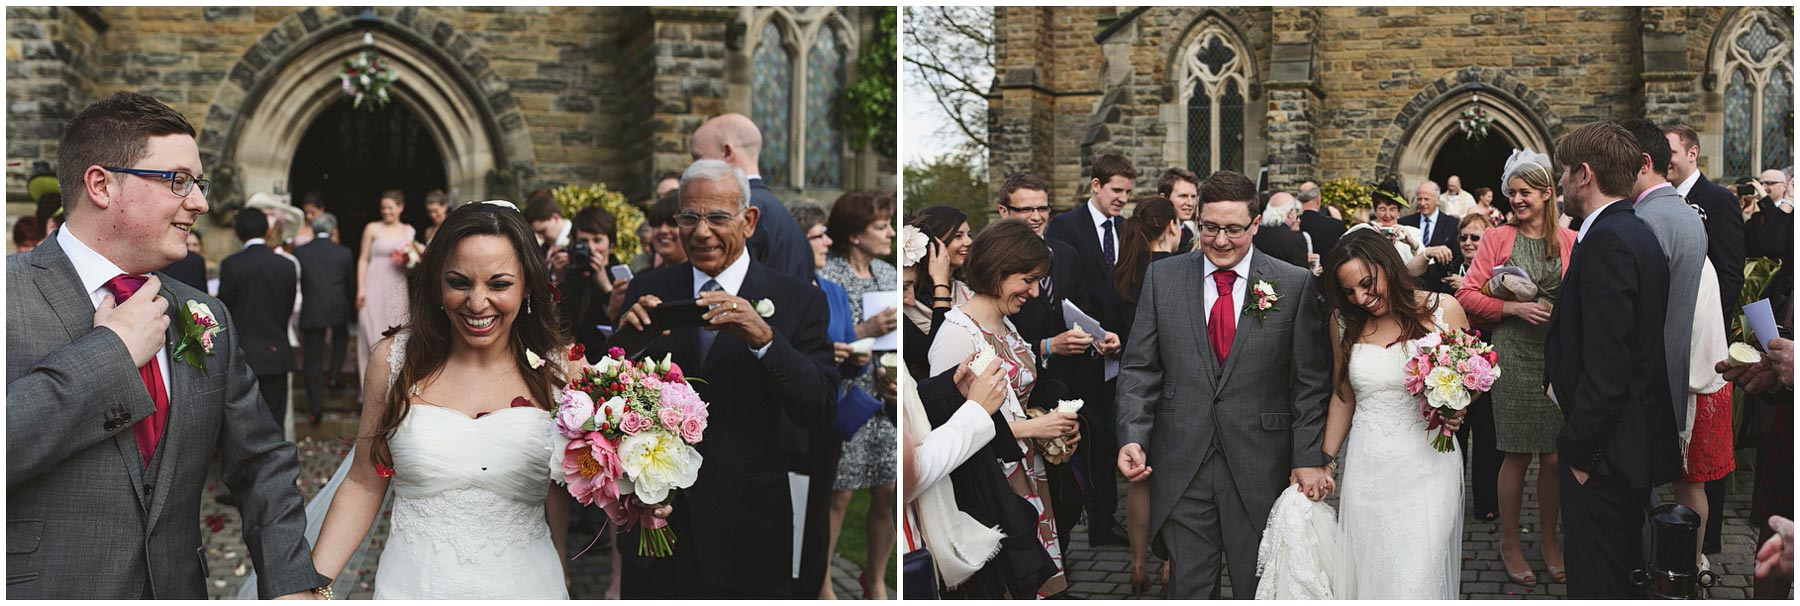 Rudding-Park-Wedding-Photography_0073